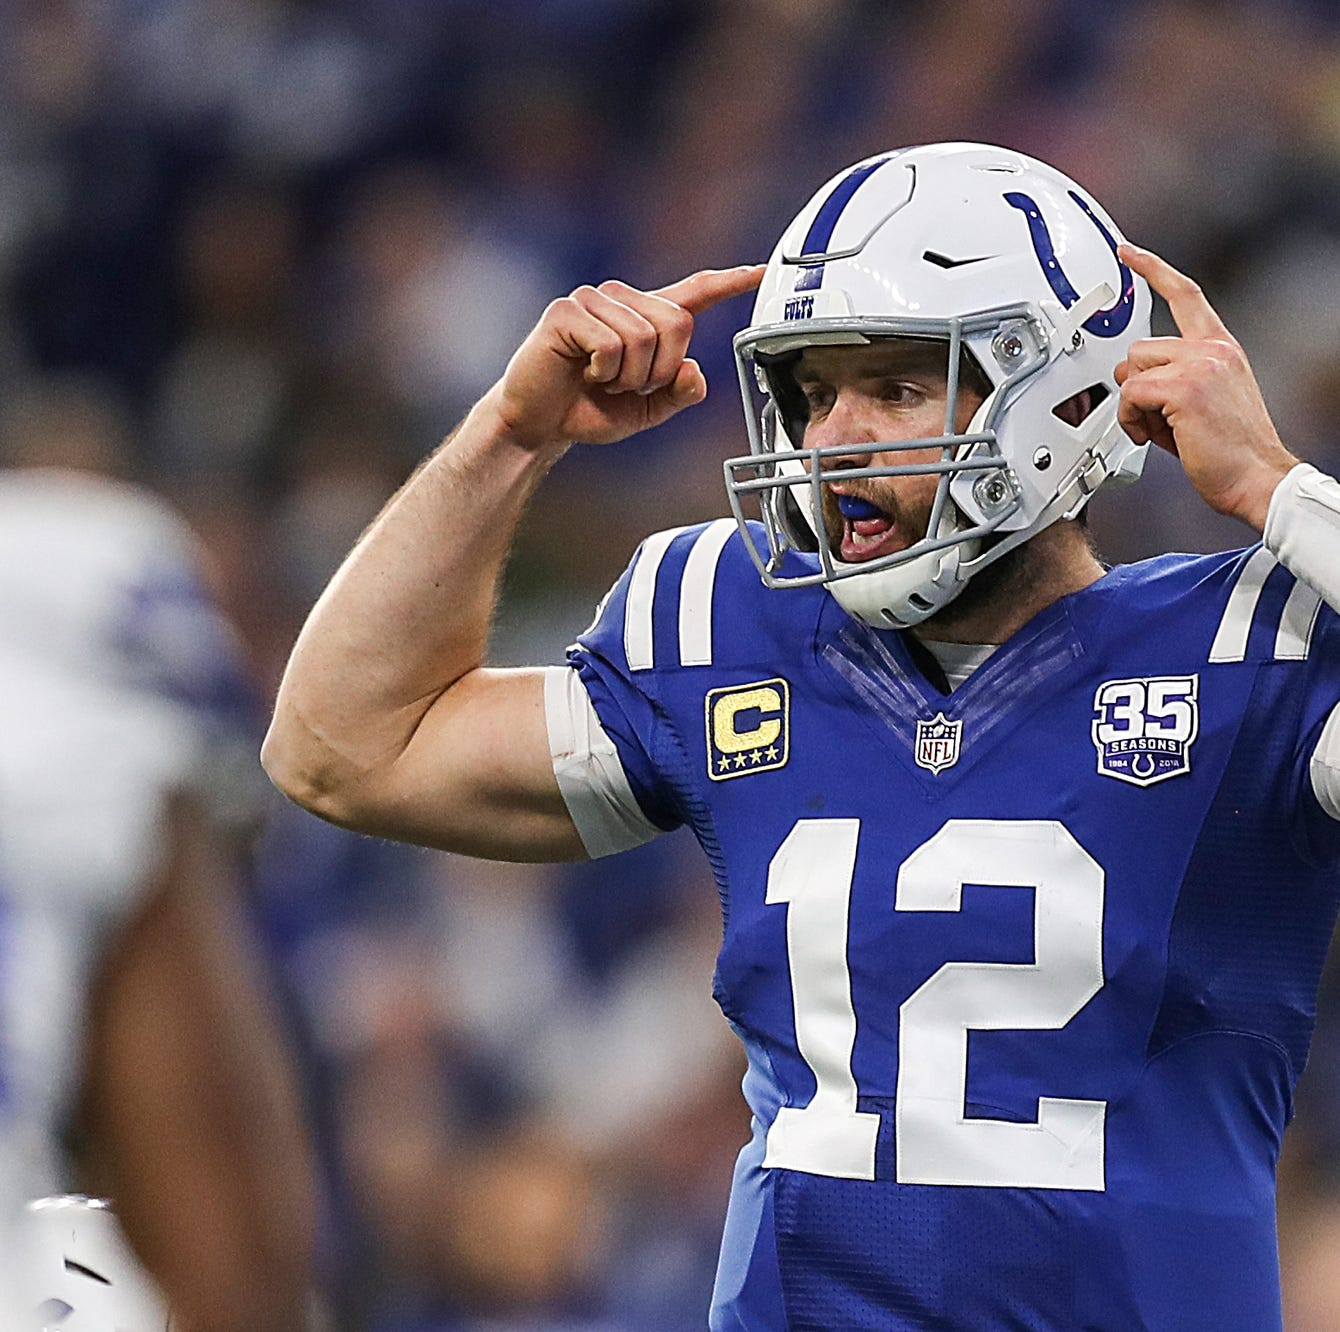 There's a 72.5 percent chance the Colts are playing to make the playoffs vs. Titans